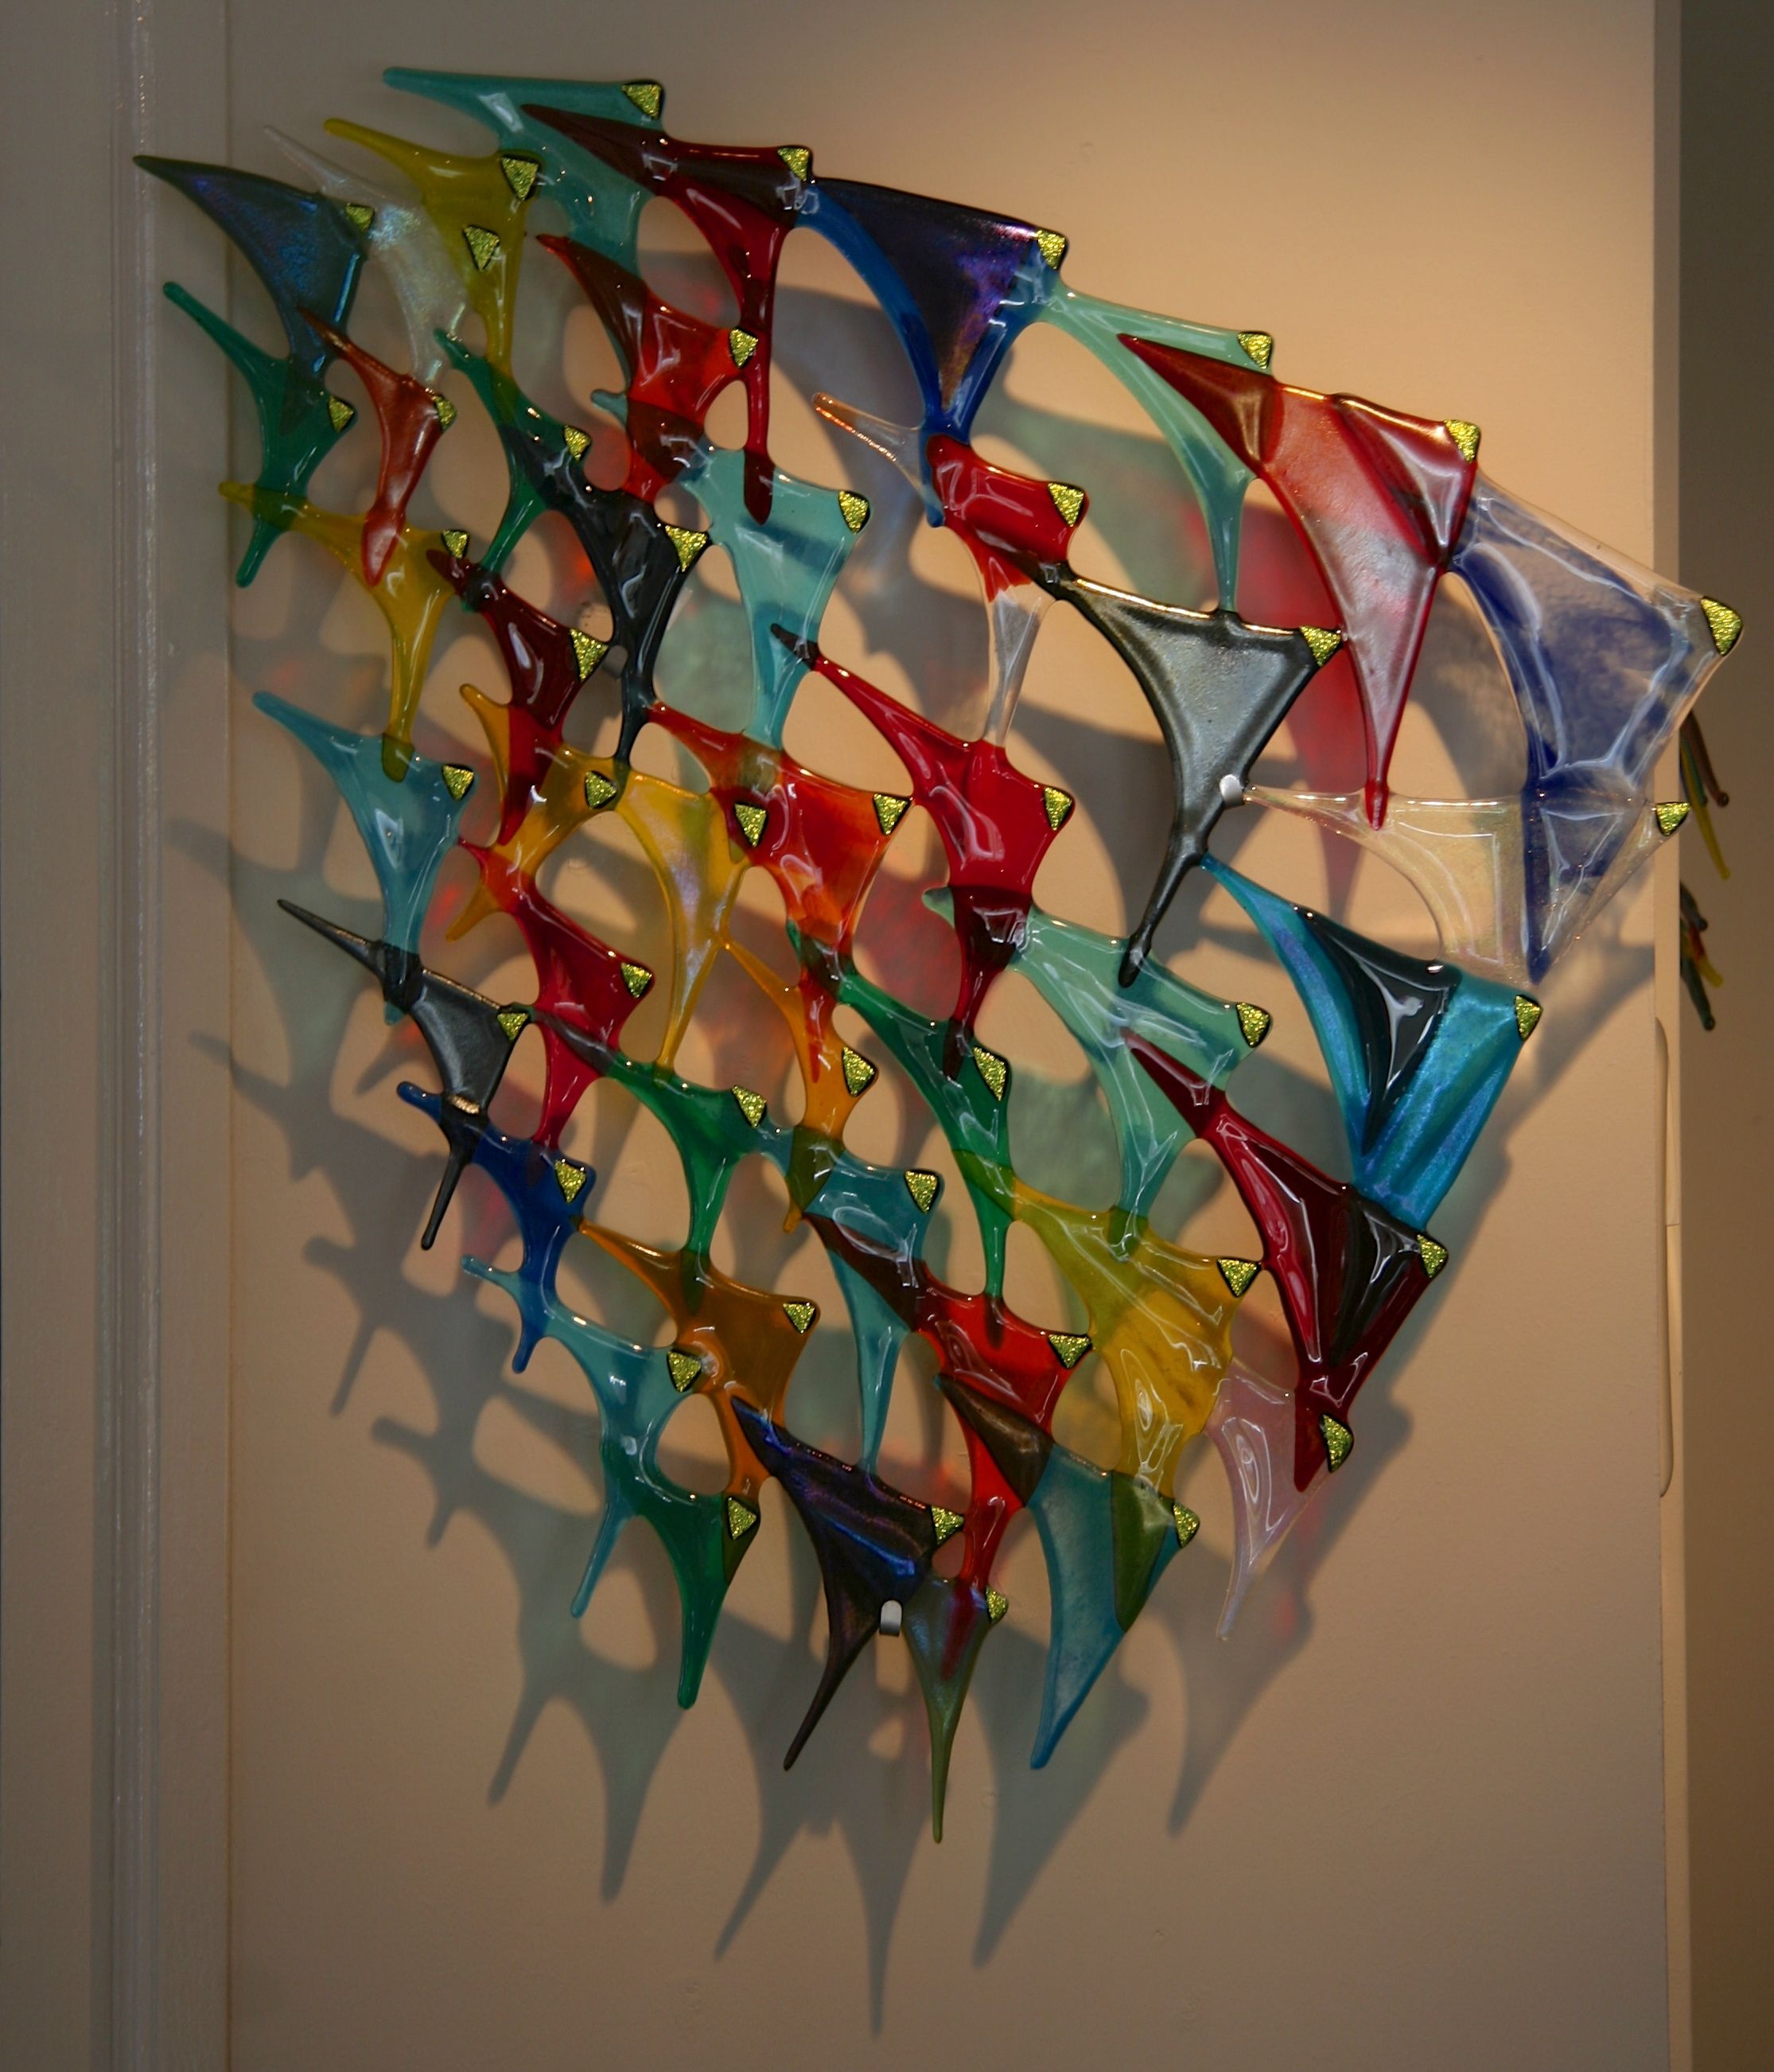 Fused Glass Wall Art: 1000+ Images About Vidrios On Pinterest